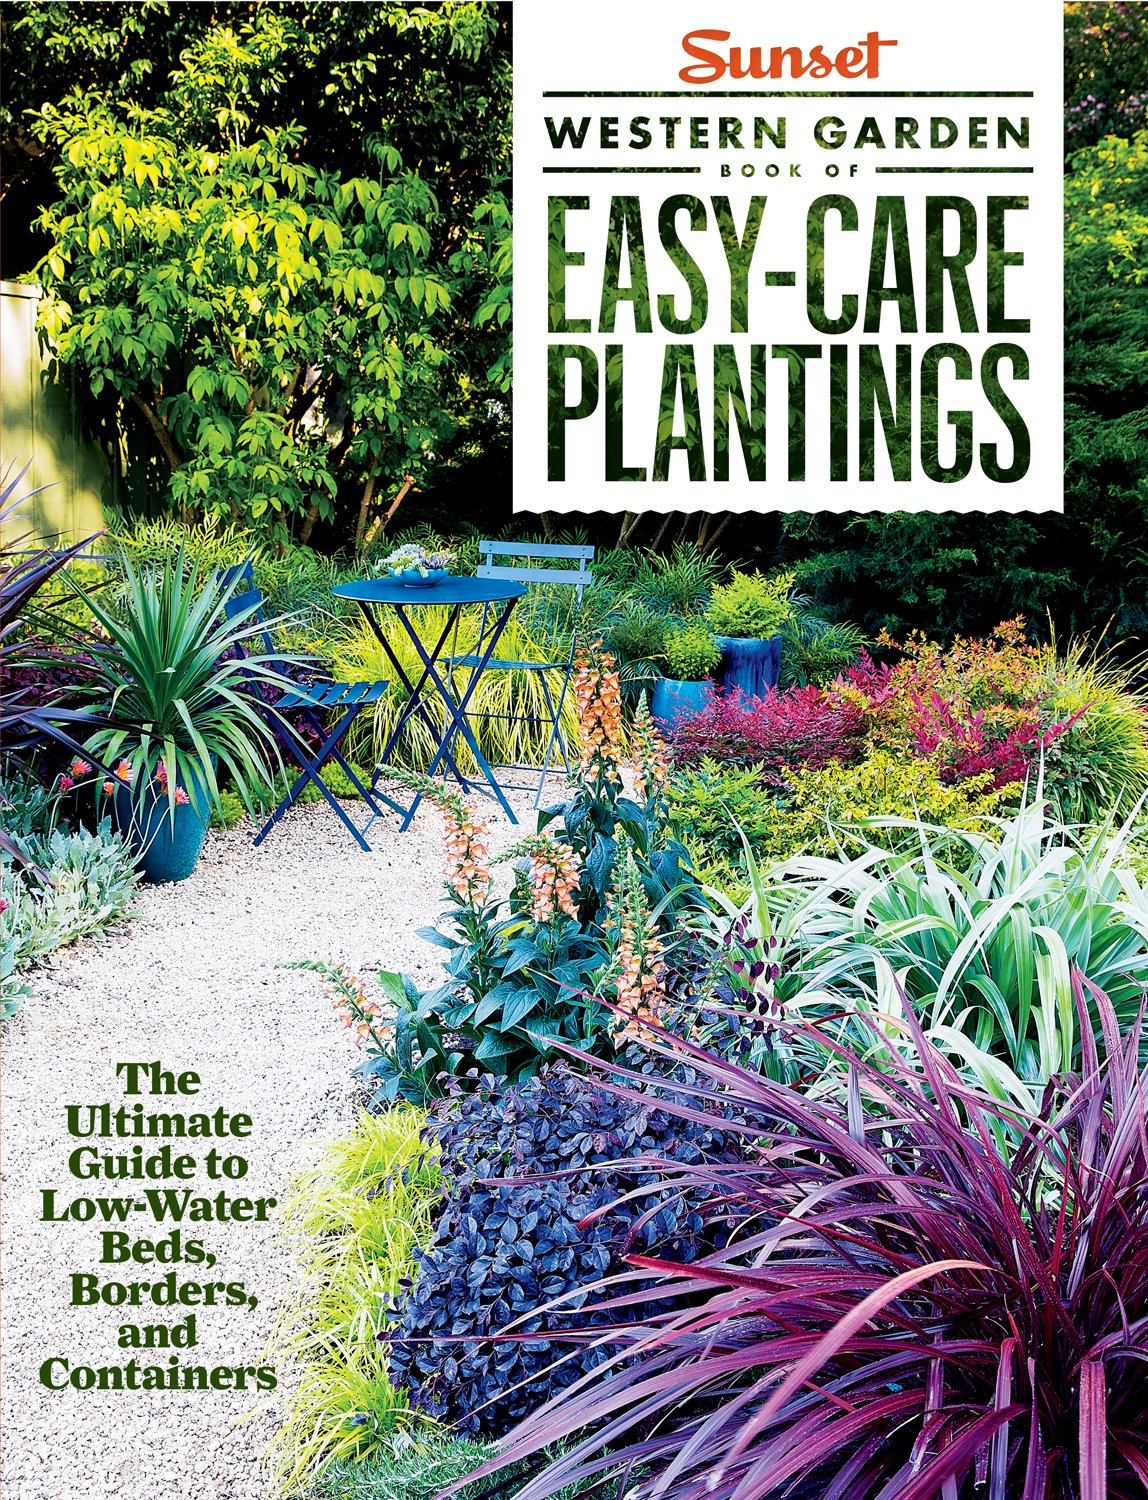 Western Garden Ideas 24 great ideas from the western garden book of landscaping Sunset Western Garden Book Of Easy Care Plantings The Ultimate Guide To Low Water Beds Borders And Containers The Editors Of Sunset Magazine